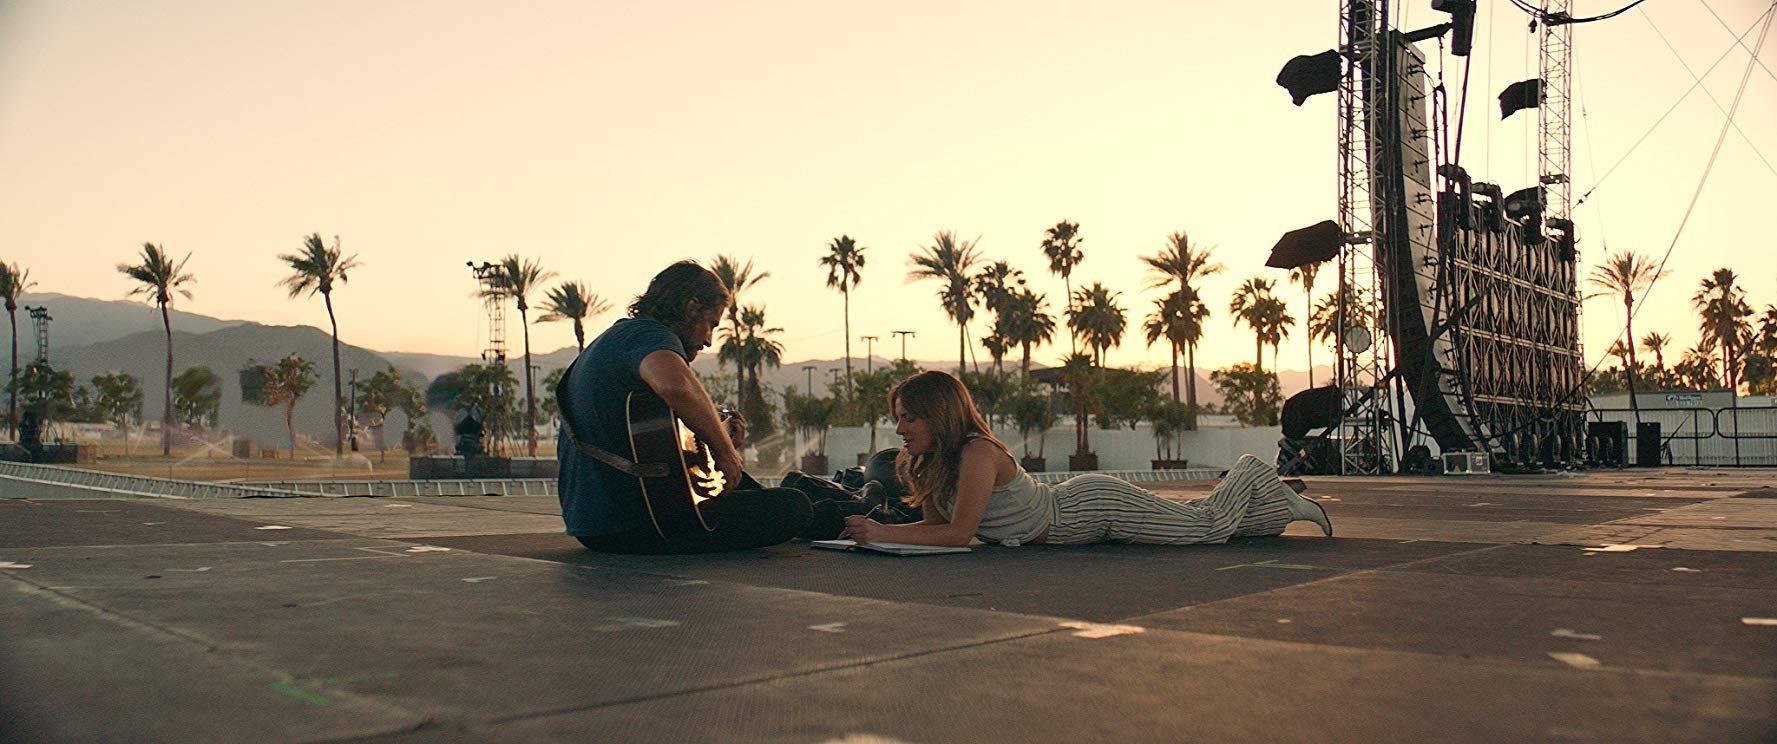 movie review, a star is born, lucas mirabella